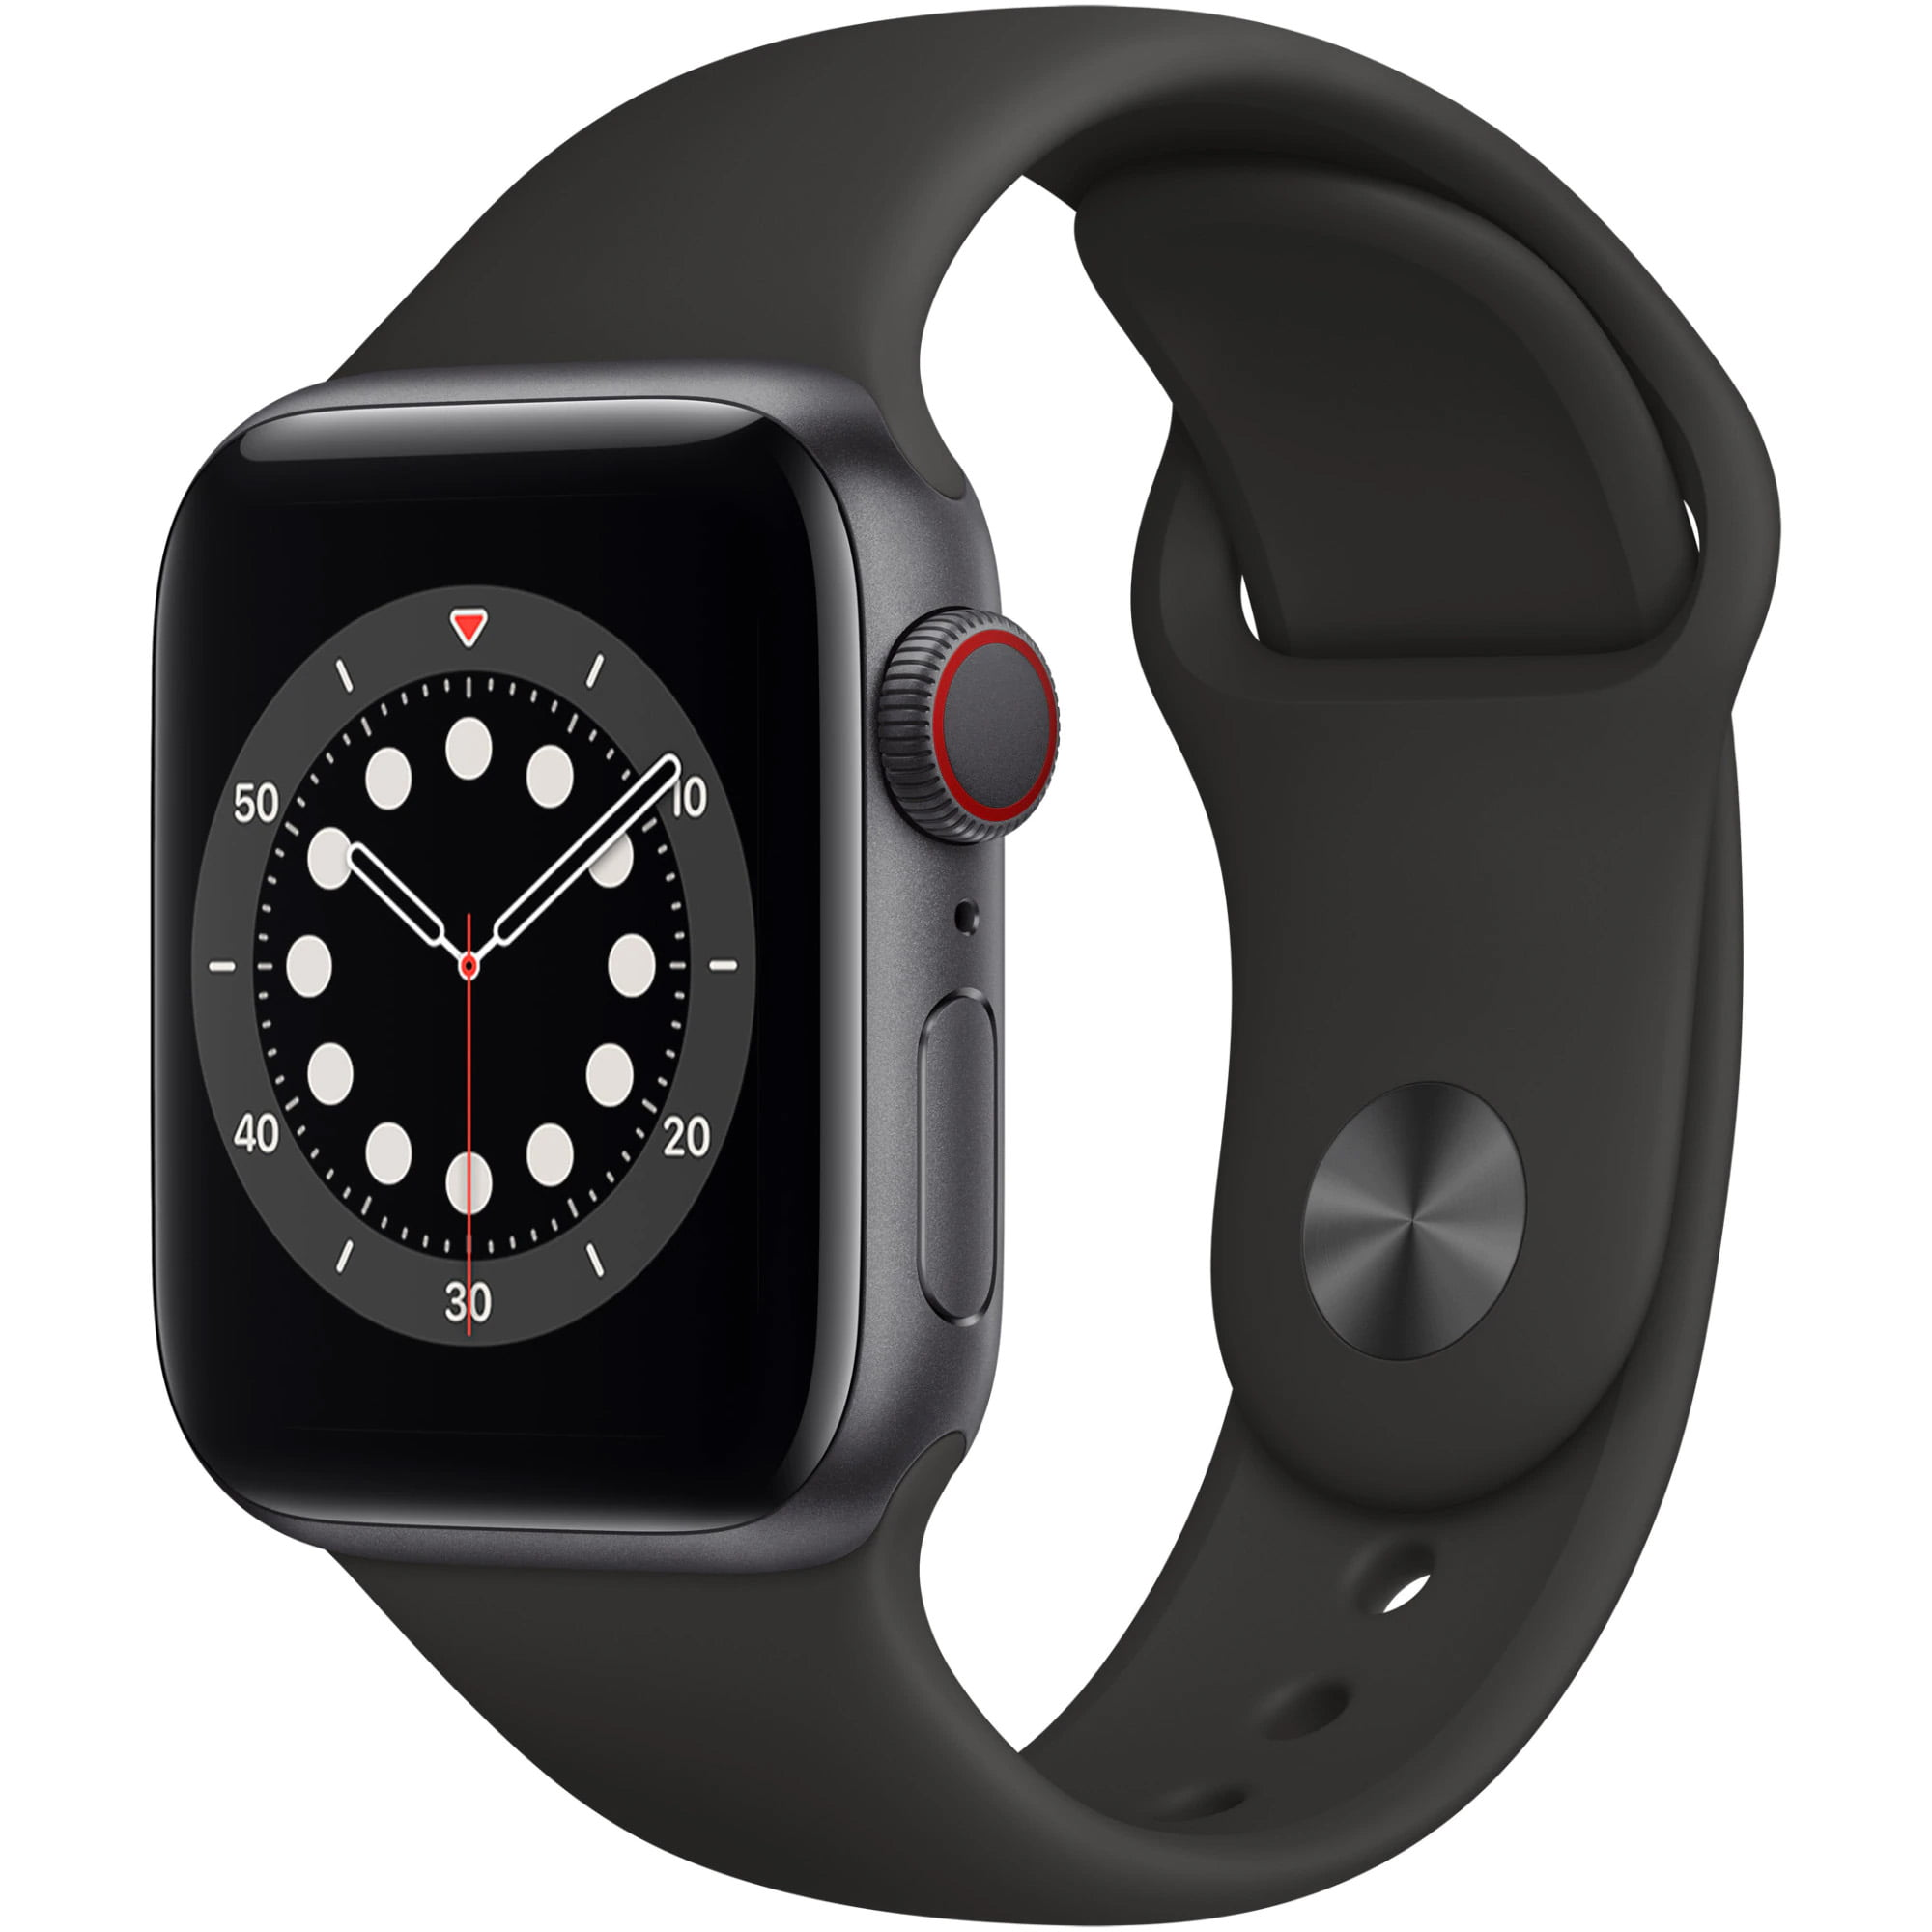 Ceas Smartwatch Apple Watch Series 6, GPS + Cellular, 44mm Space Grey Aluminium Case, Black Sport Band